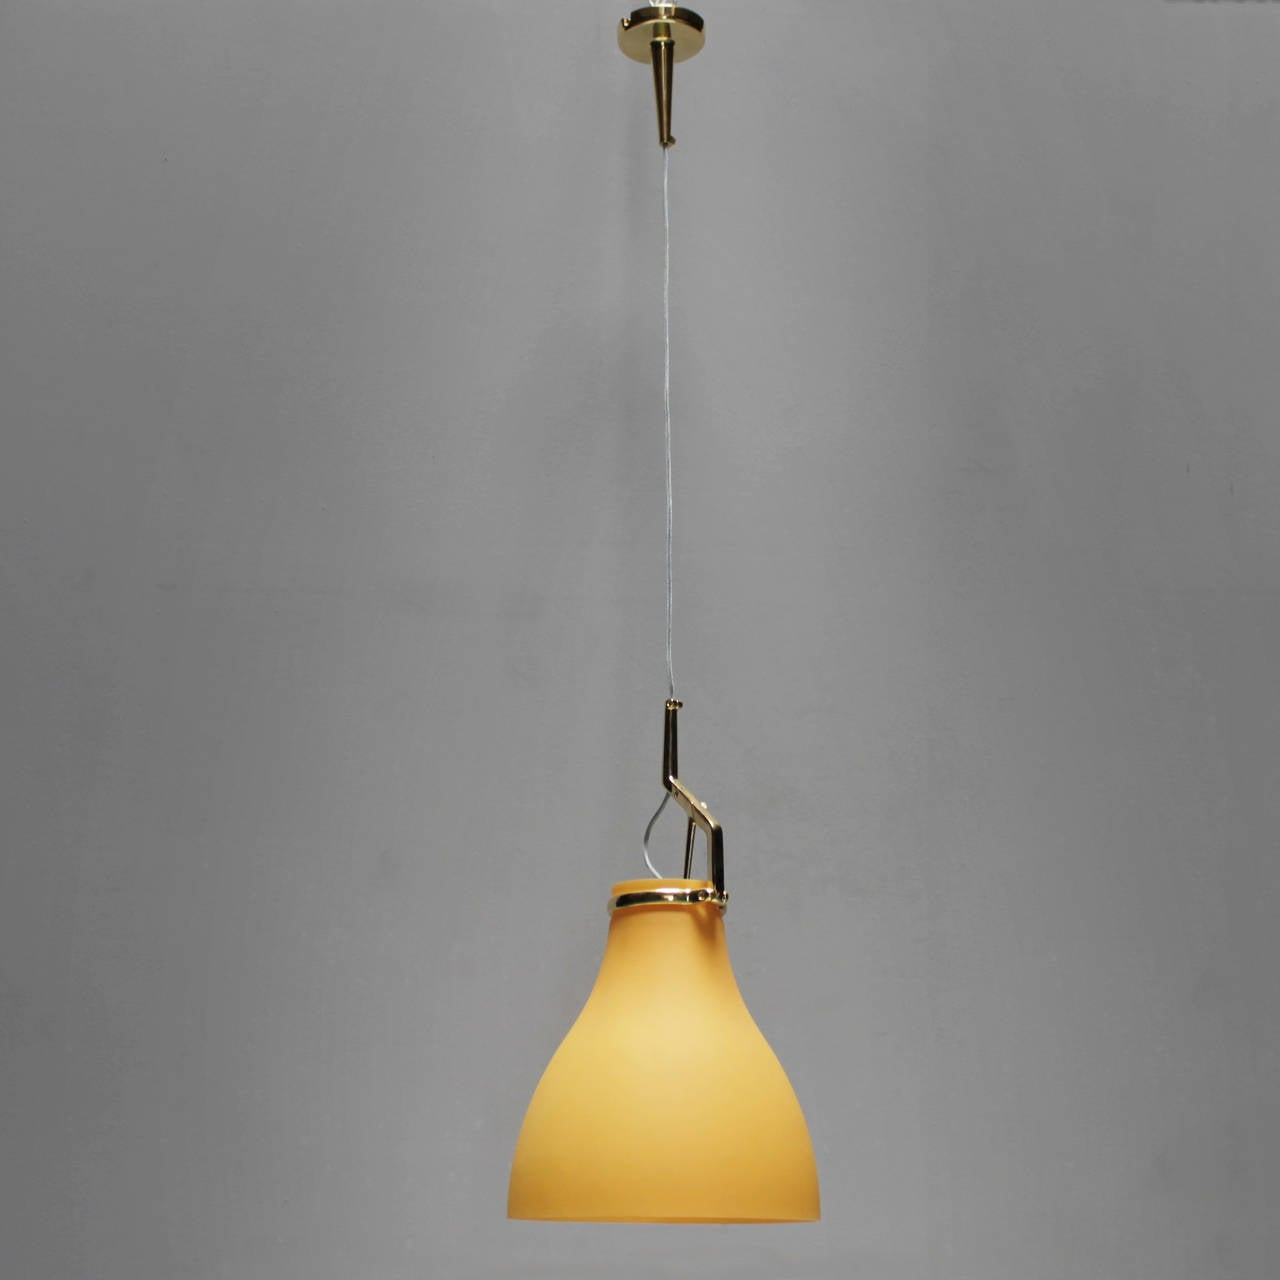 Mid-Century Modern Large Pendant by Paolo Rizzatto for Luceplan Italy For Sale